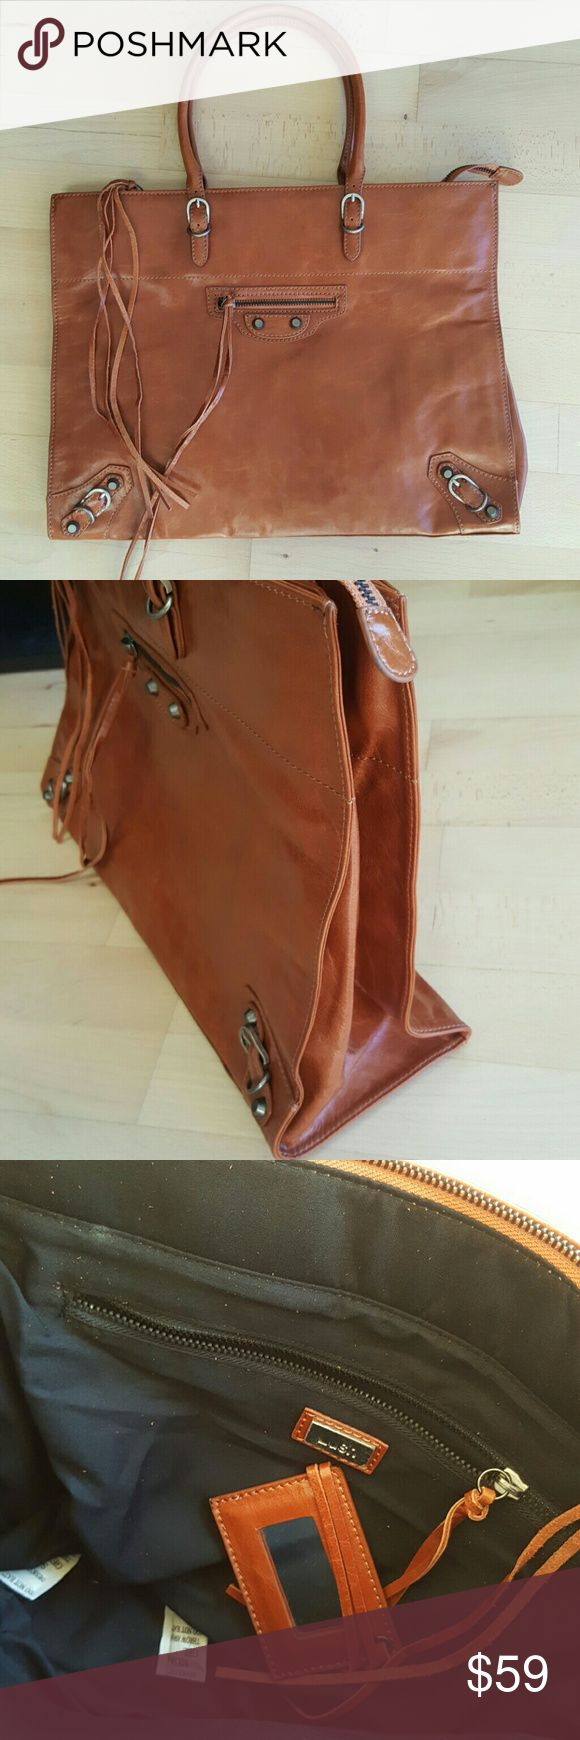 New cognac Brown leather motorcycle biker tote bag Brand new Lush brand cognac brown leather bag. Inspired by the Balenciaga motorcycle bag this bag is perfect as a laptop bag or an office bag. Comes with detachable mirror this classic style is even better in person Lush Bags Totes